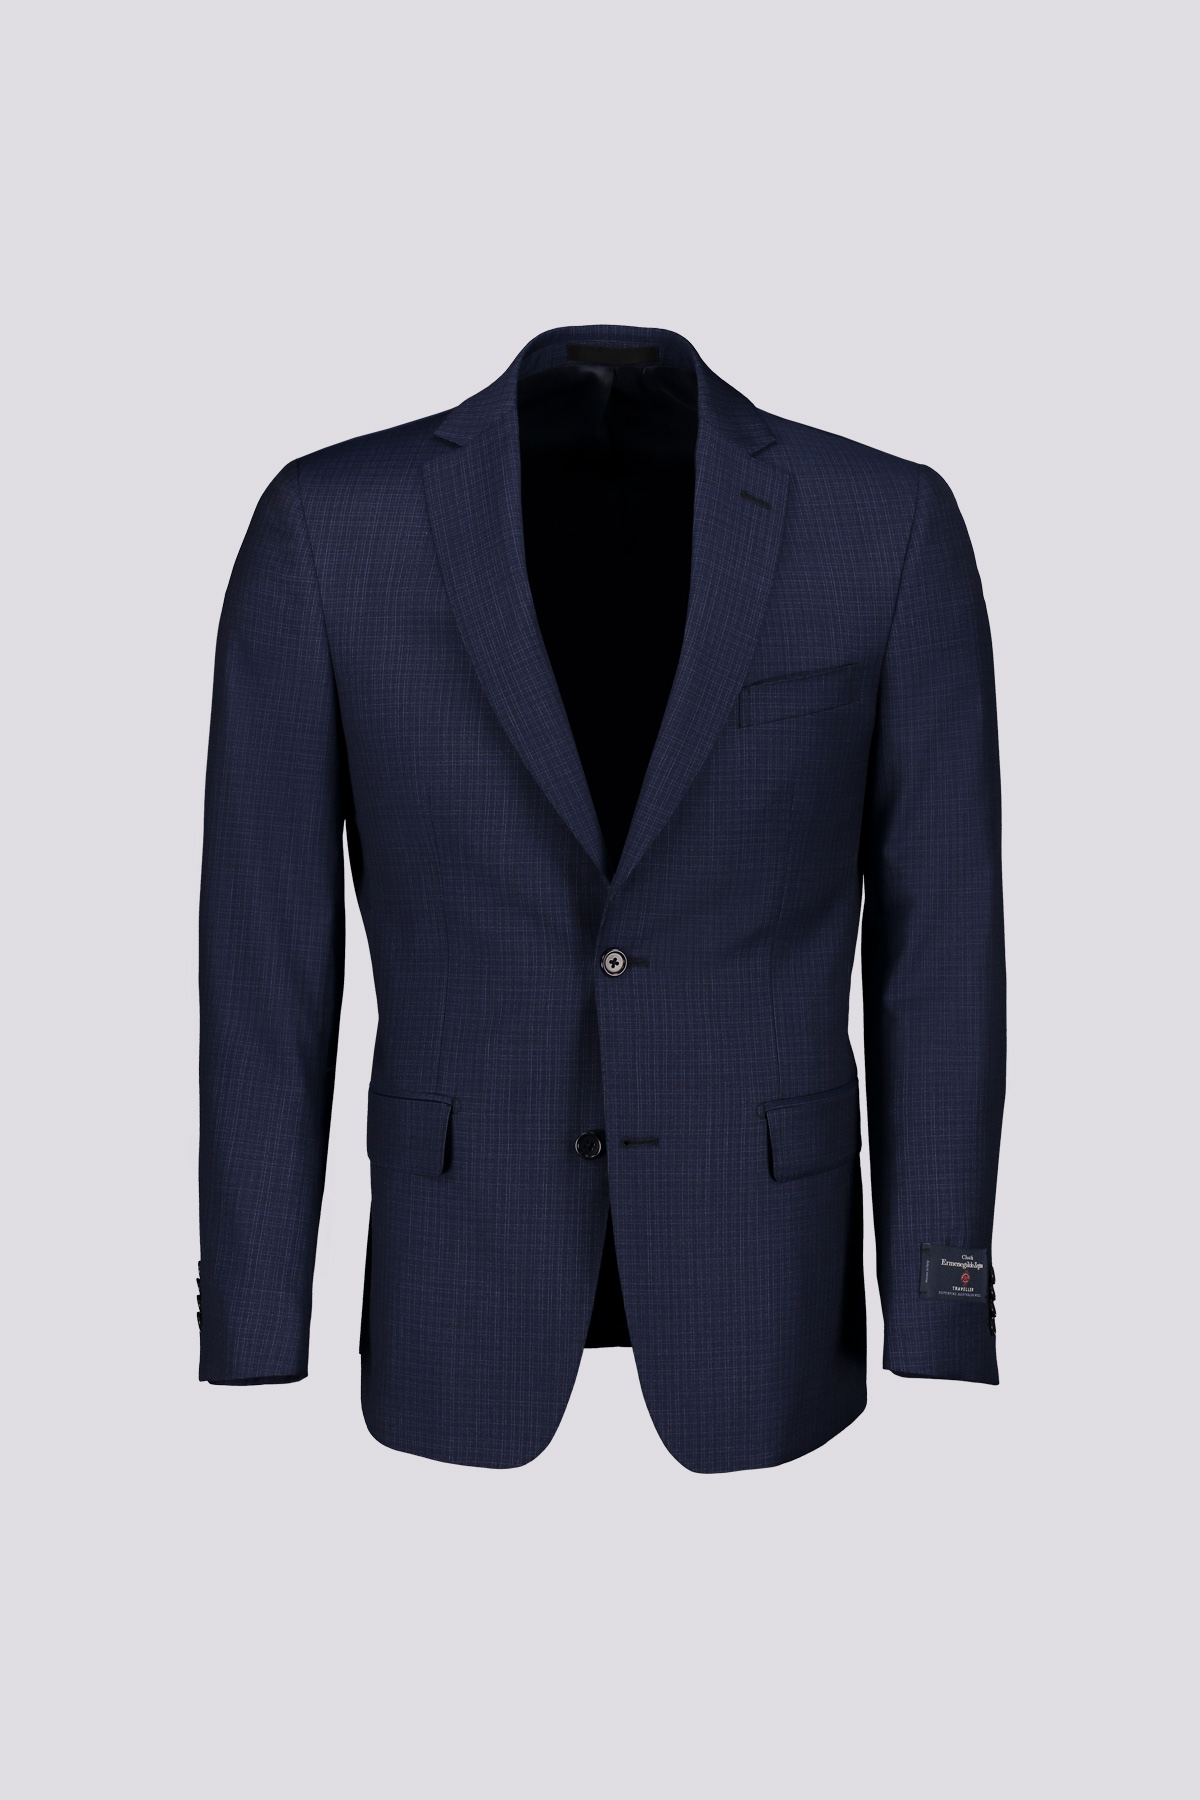 TRAJE MARCA CLOTH ERMENEGILDO ZEGNA SEMICANVAS COLOR AZUL COBALTO